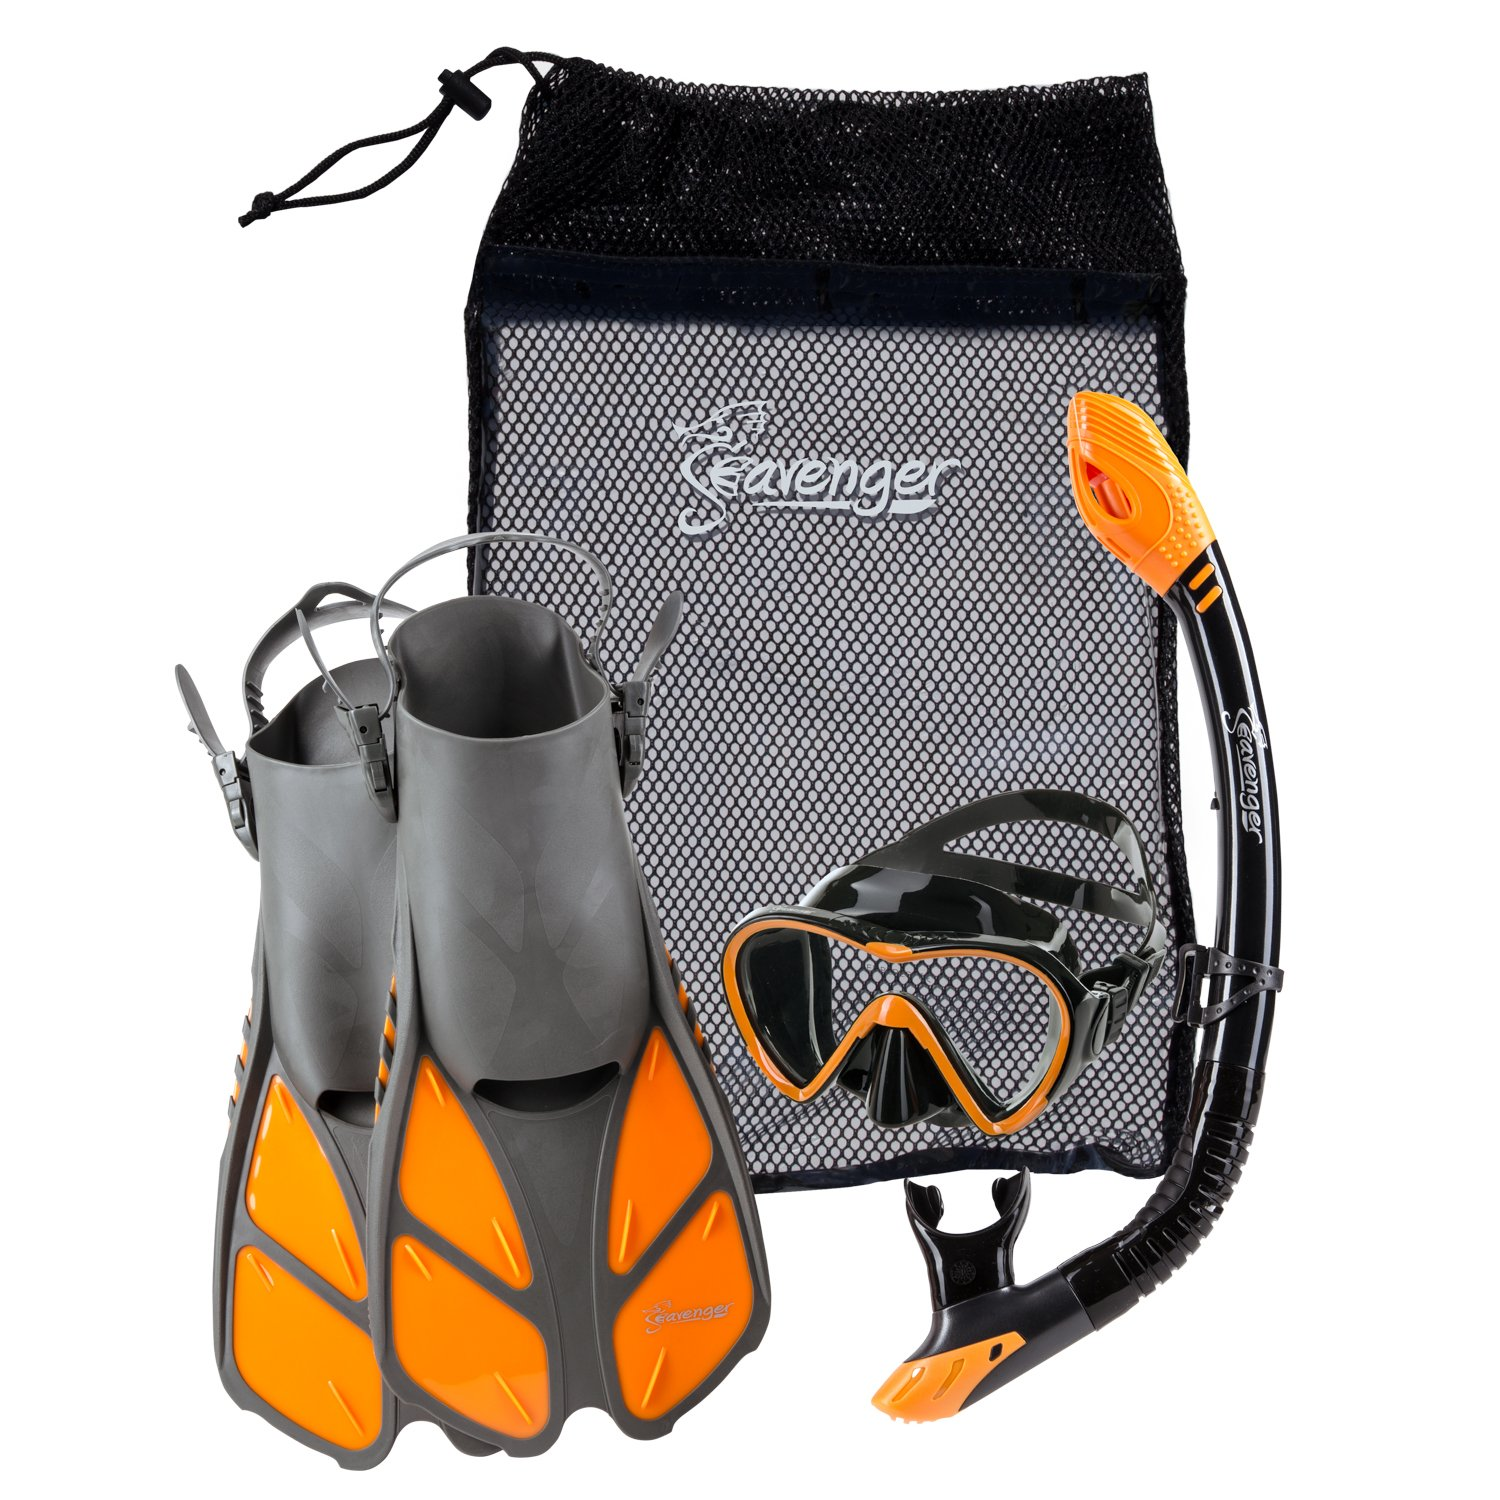 Seavenger Diving Dry Top Snorkel Set with Trek Fin, Single Lens Mask and Gear Bag, L/XL - Size 9 to 13, Gray/Black Silicon/Orange by Seavenger